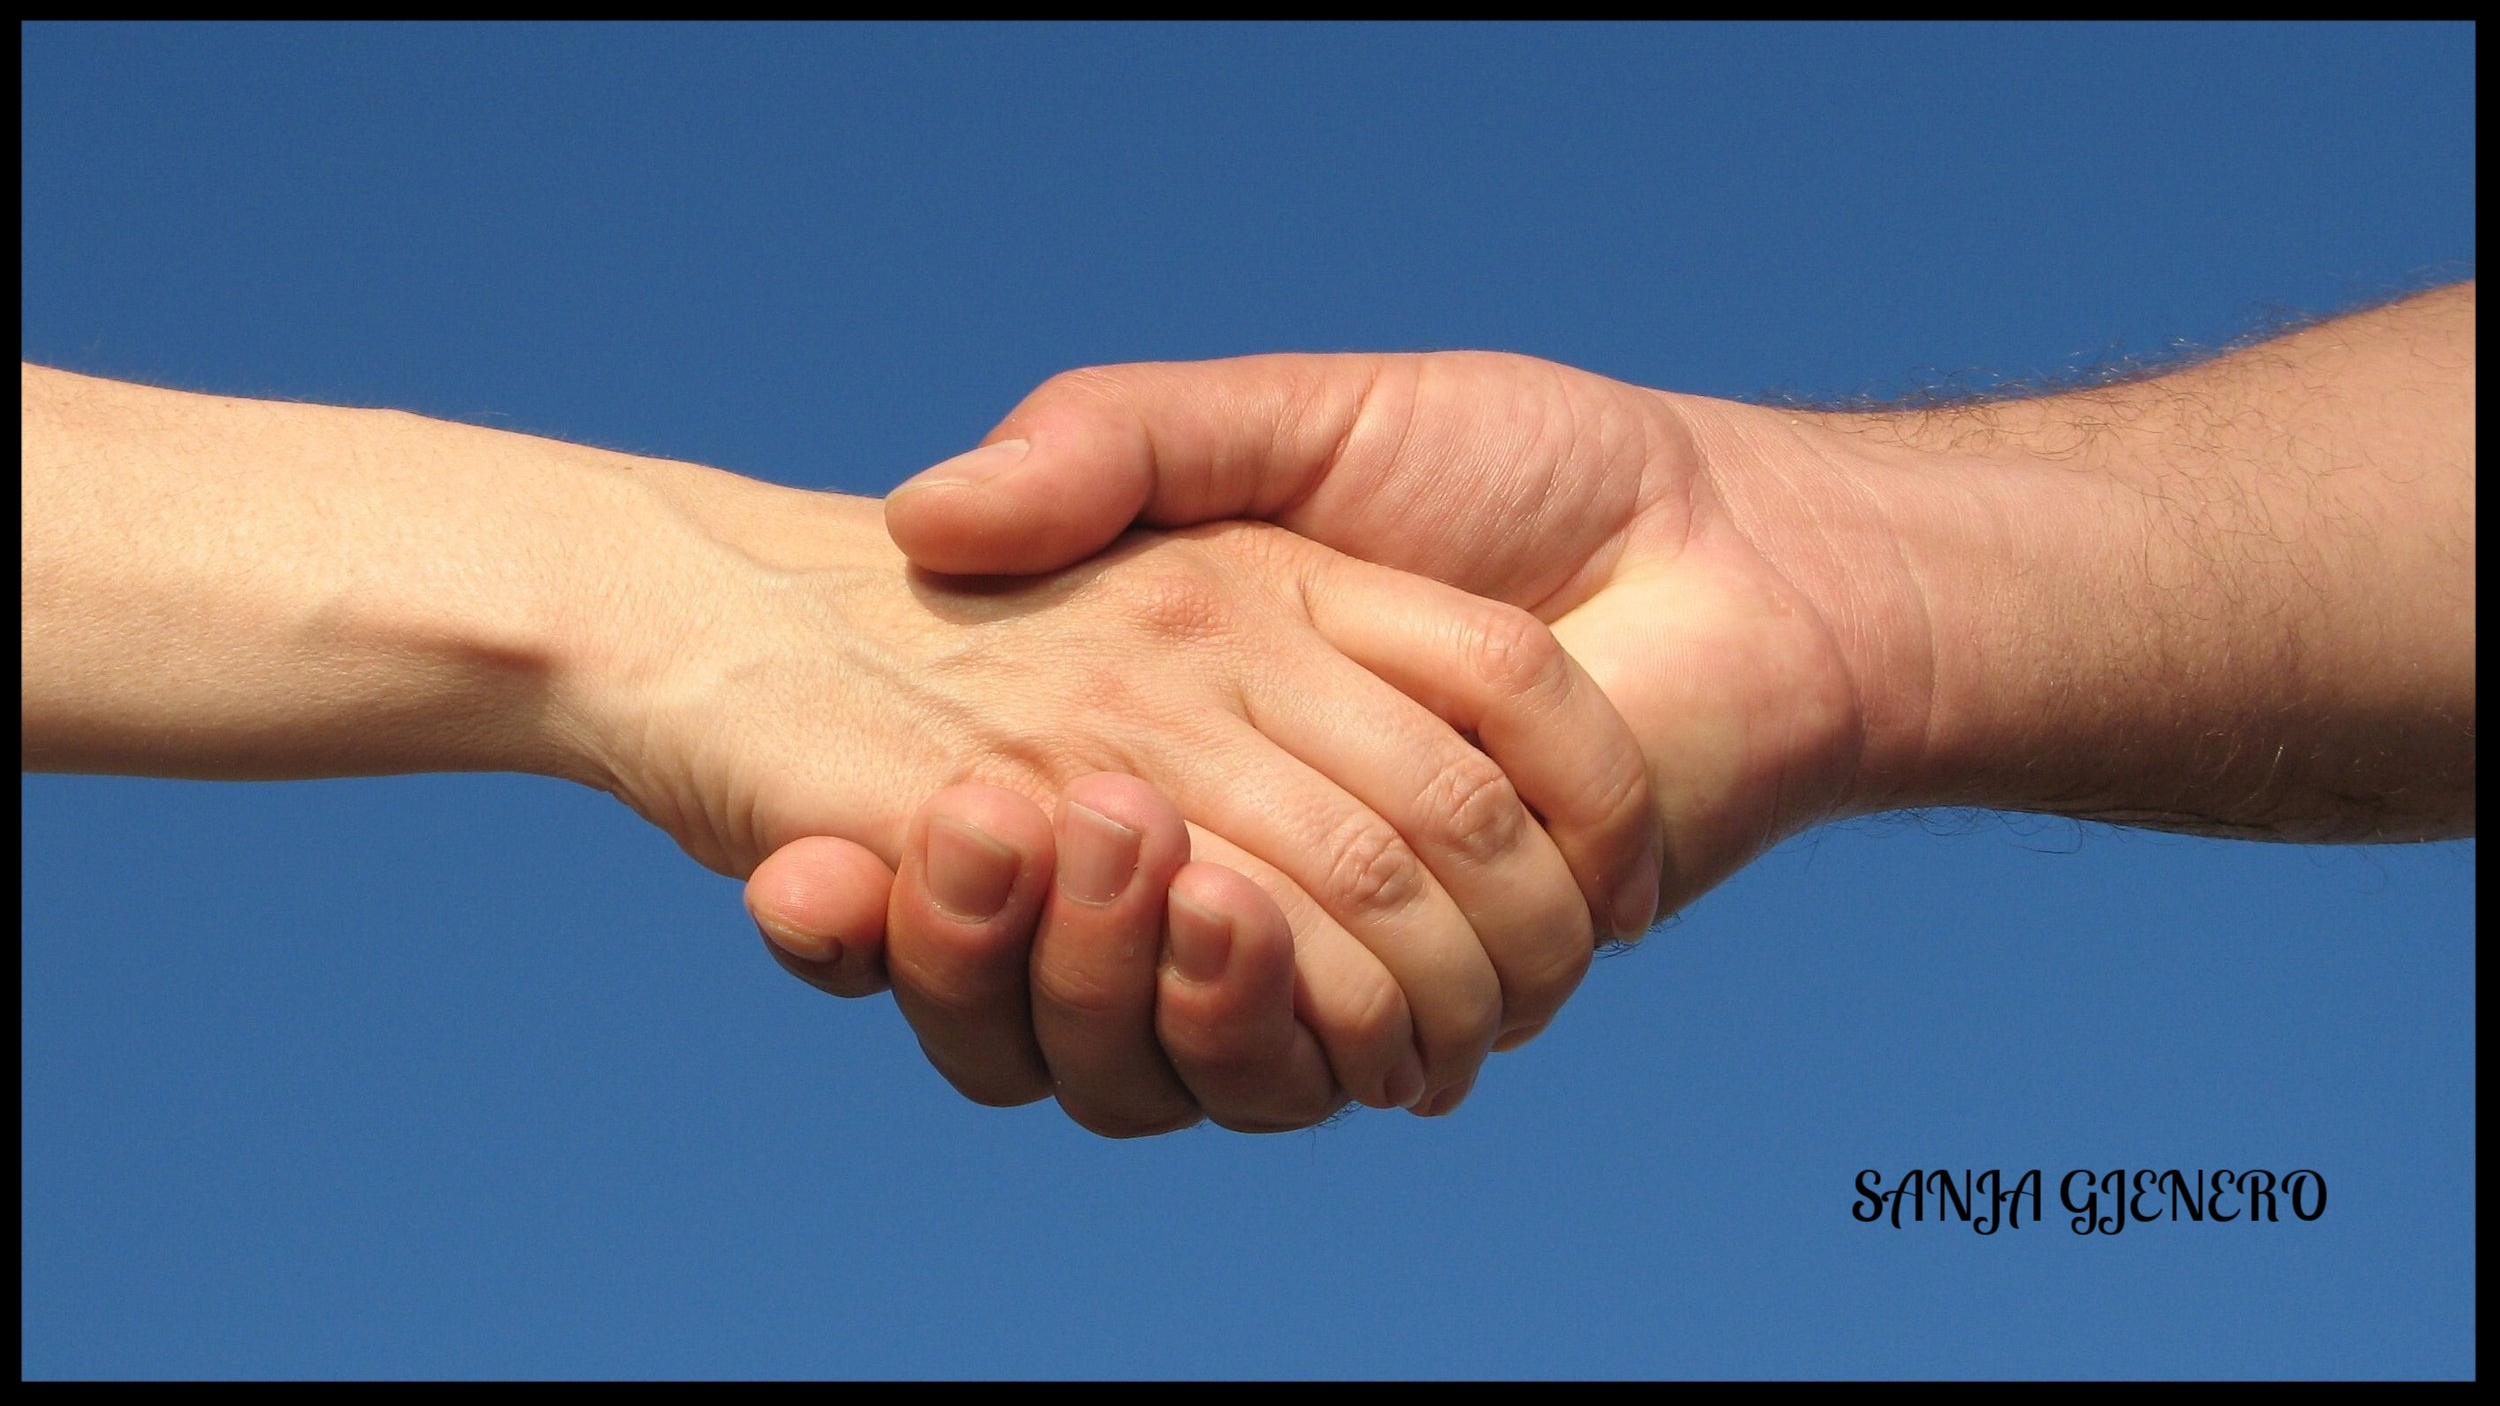 Make a Deal  (handshake) by Sanja Gjenero,   rgbstock    - 7 copy.jpg